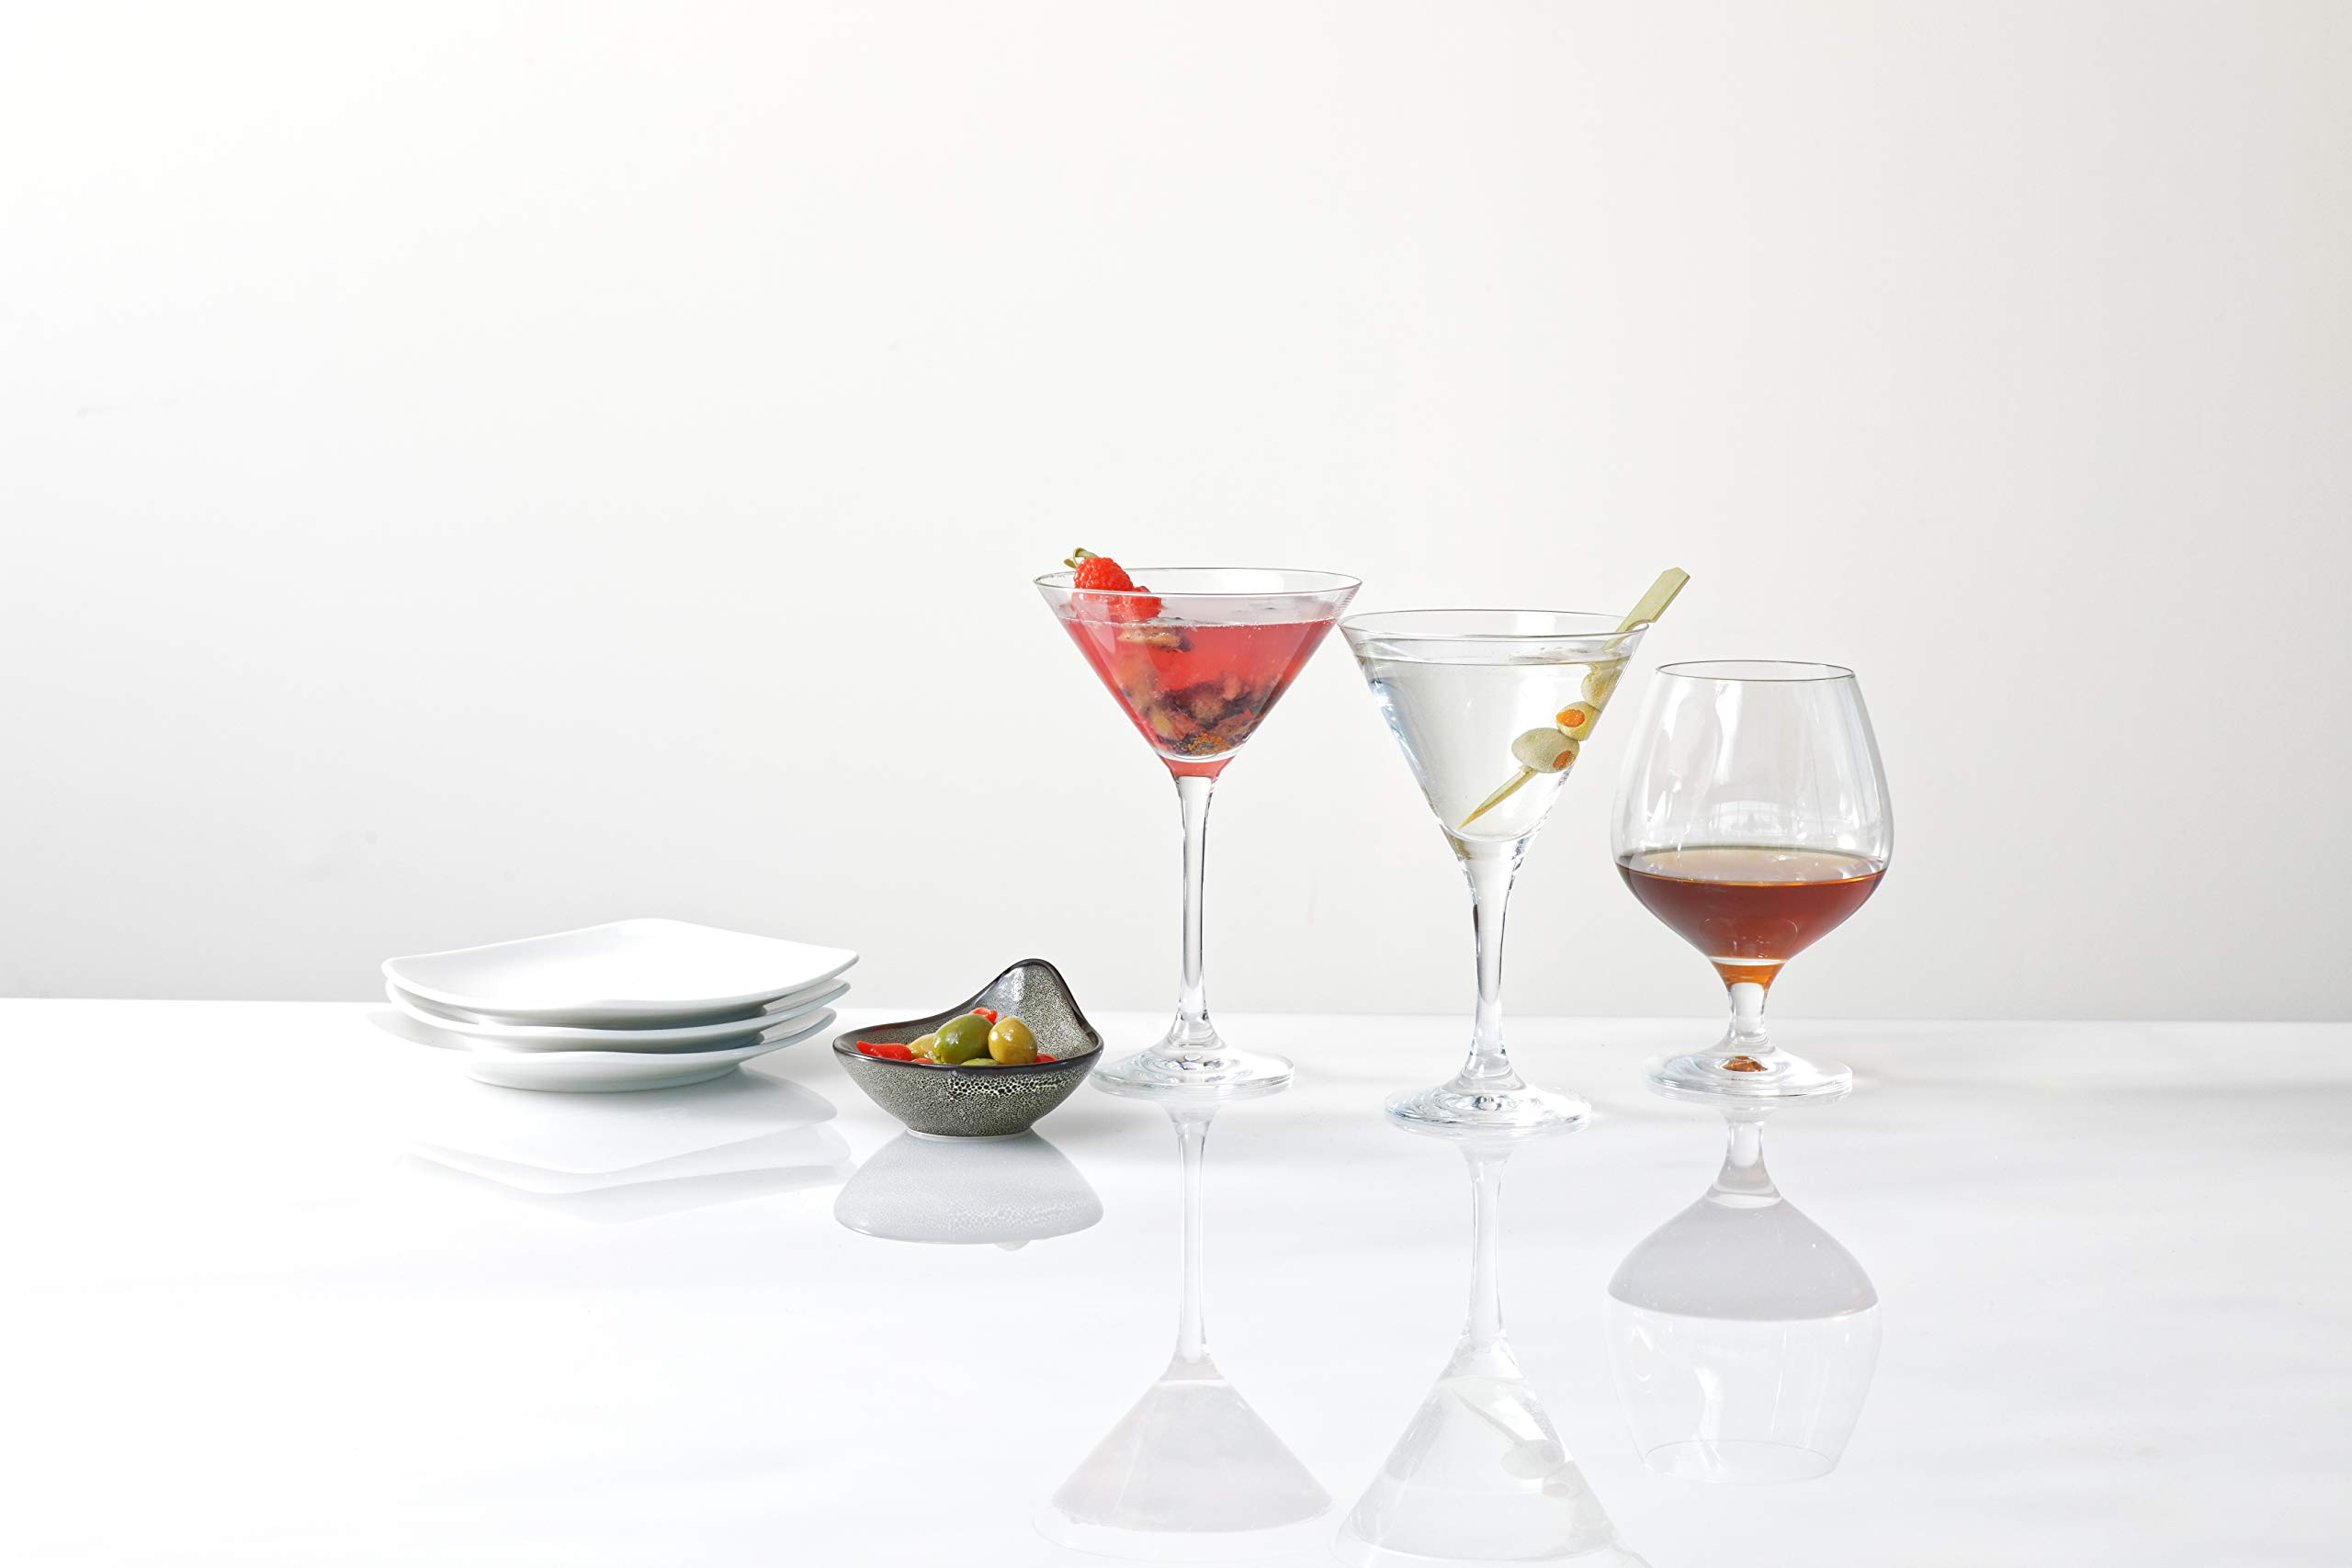 Schott Zwiesel Basic Bar Designed by World Renowned Mixologist Charles Schumann Tritan Crystal Glass, Traditional Martini Cocktail, 6.1-Ounce, Set of 6 by Schott Zwiesel (Image #3)